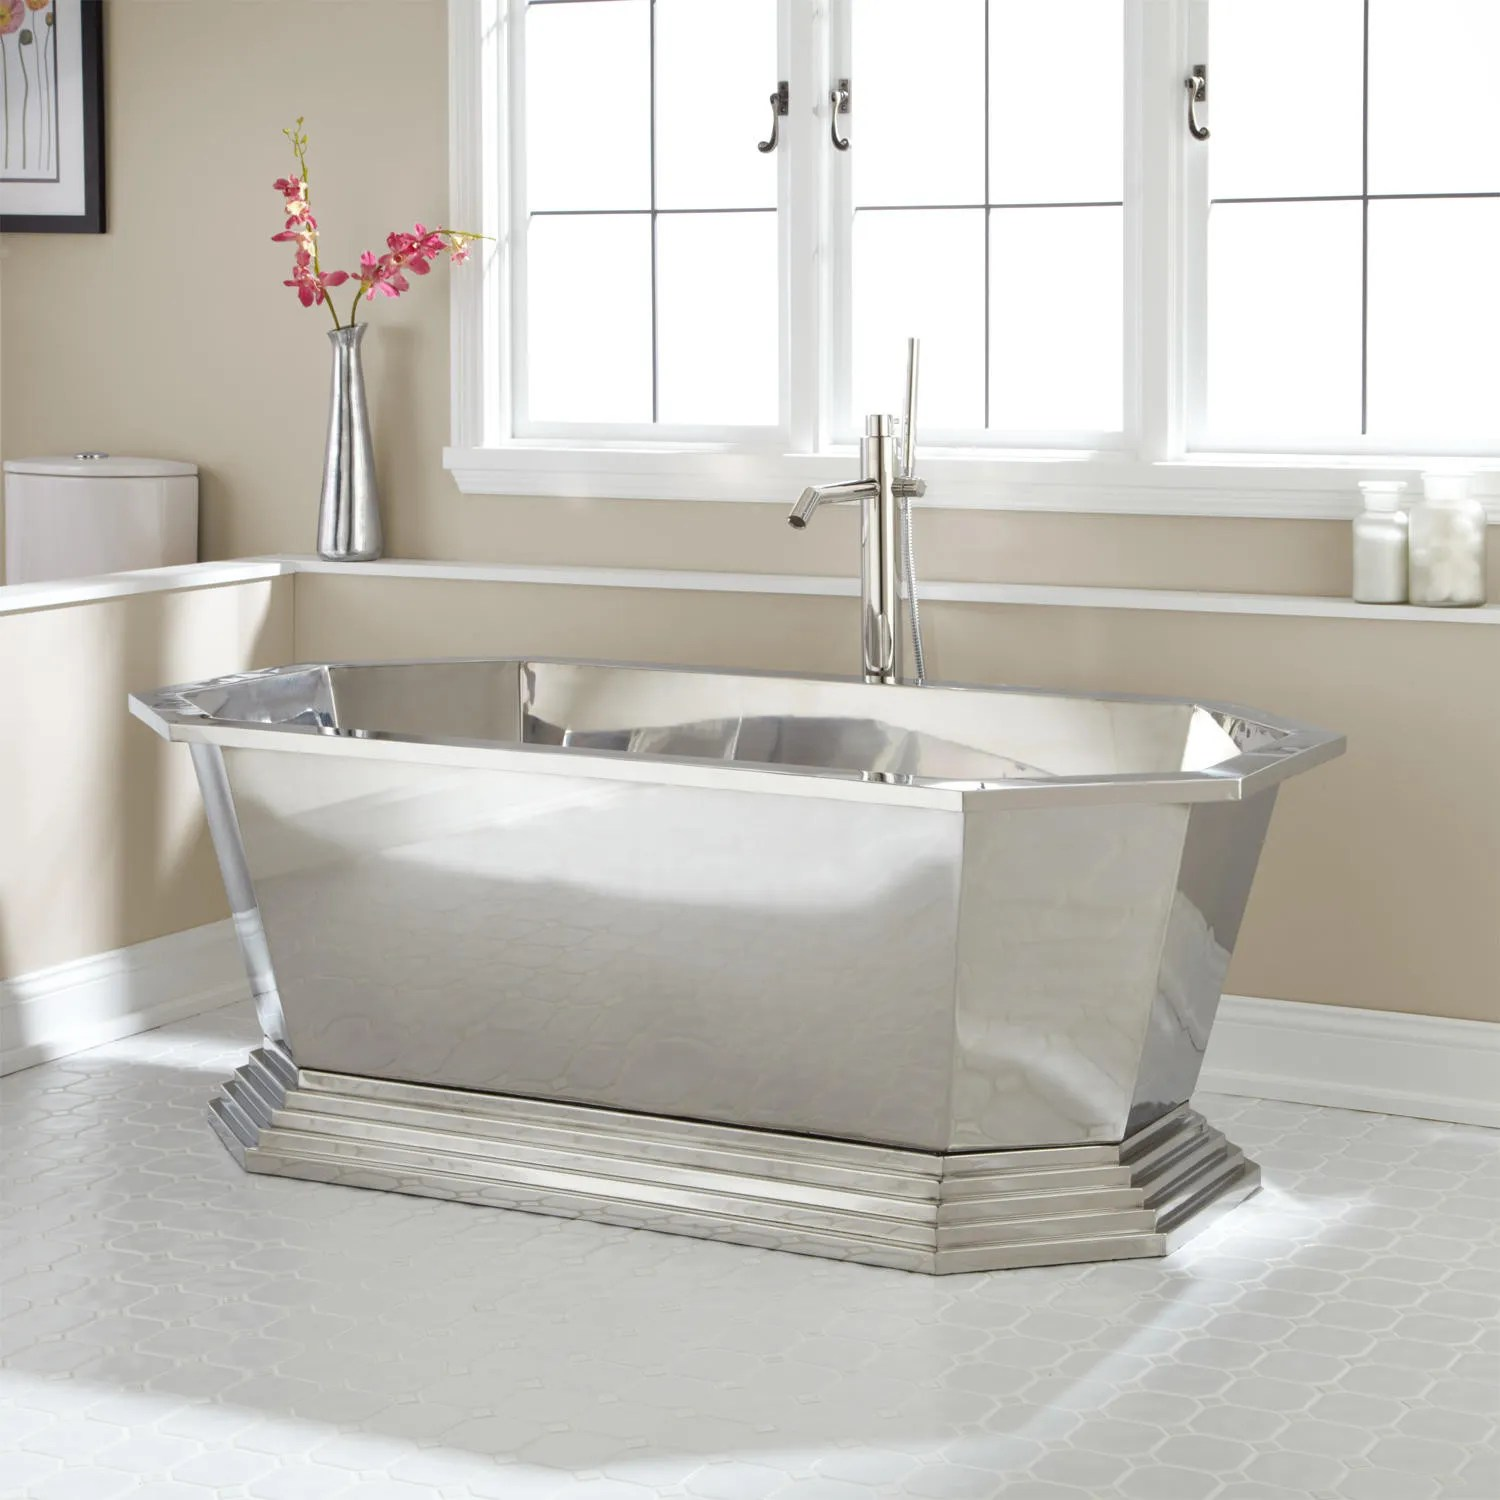 66 Selby Polished Stainless Steel Tub  Bathroom